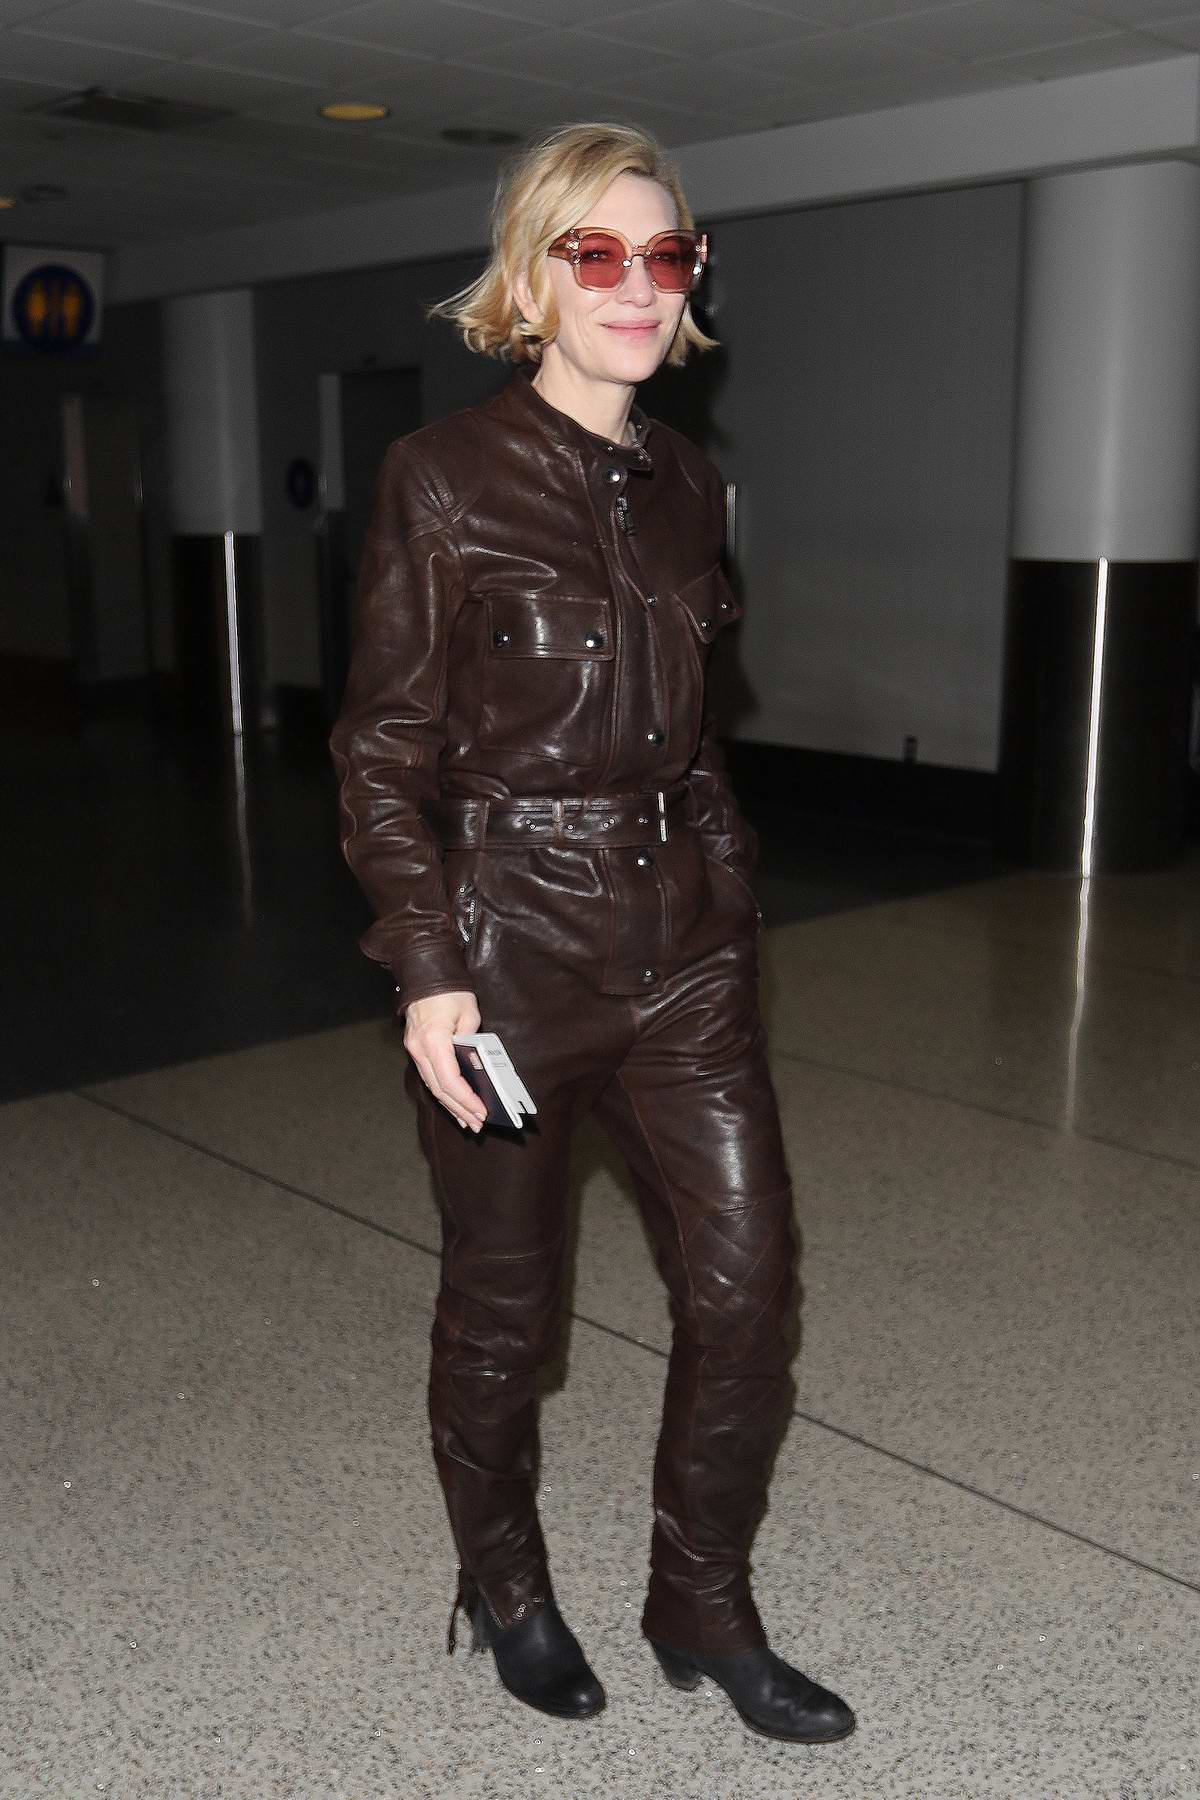 Cate Blanchett wears a brown leather jumpsuit as she arrives at LAX Airport in Los Angeles